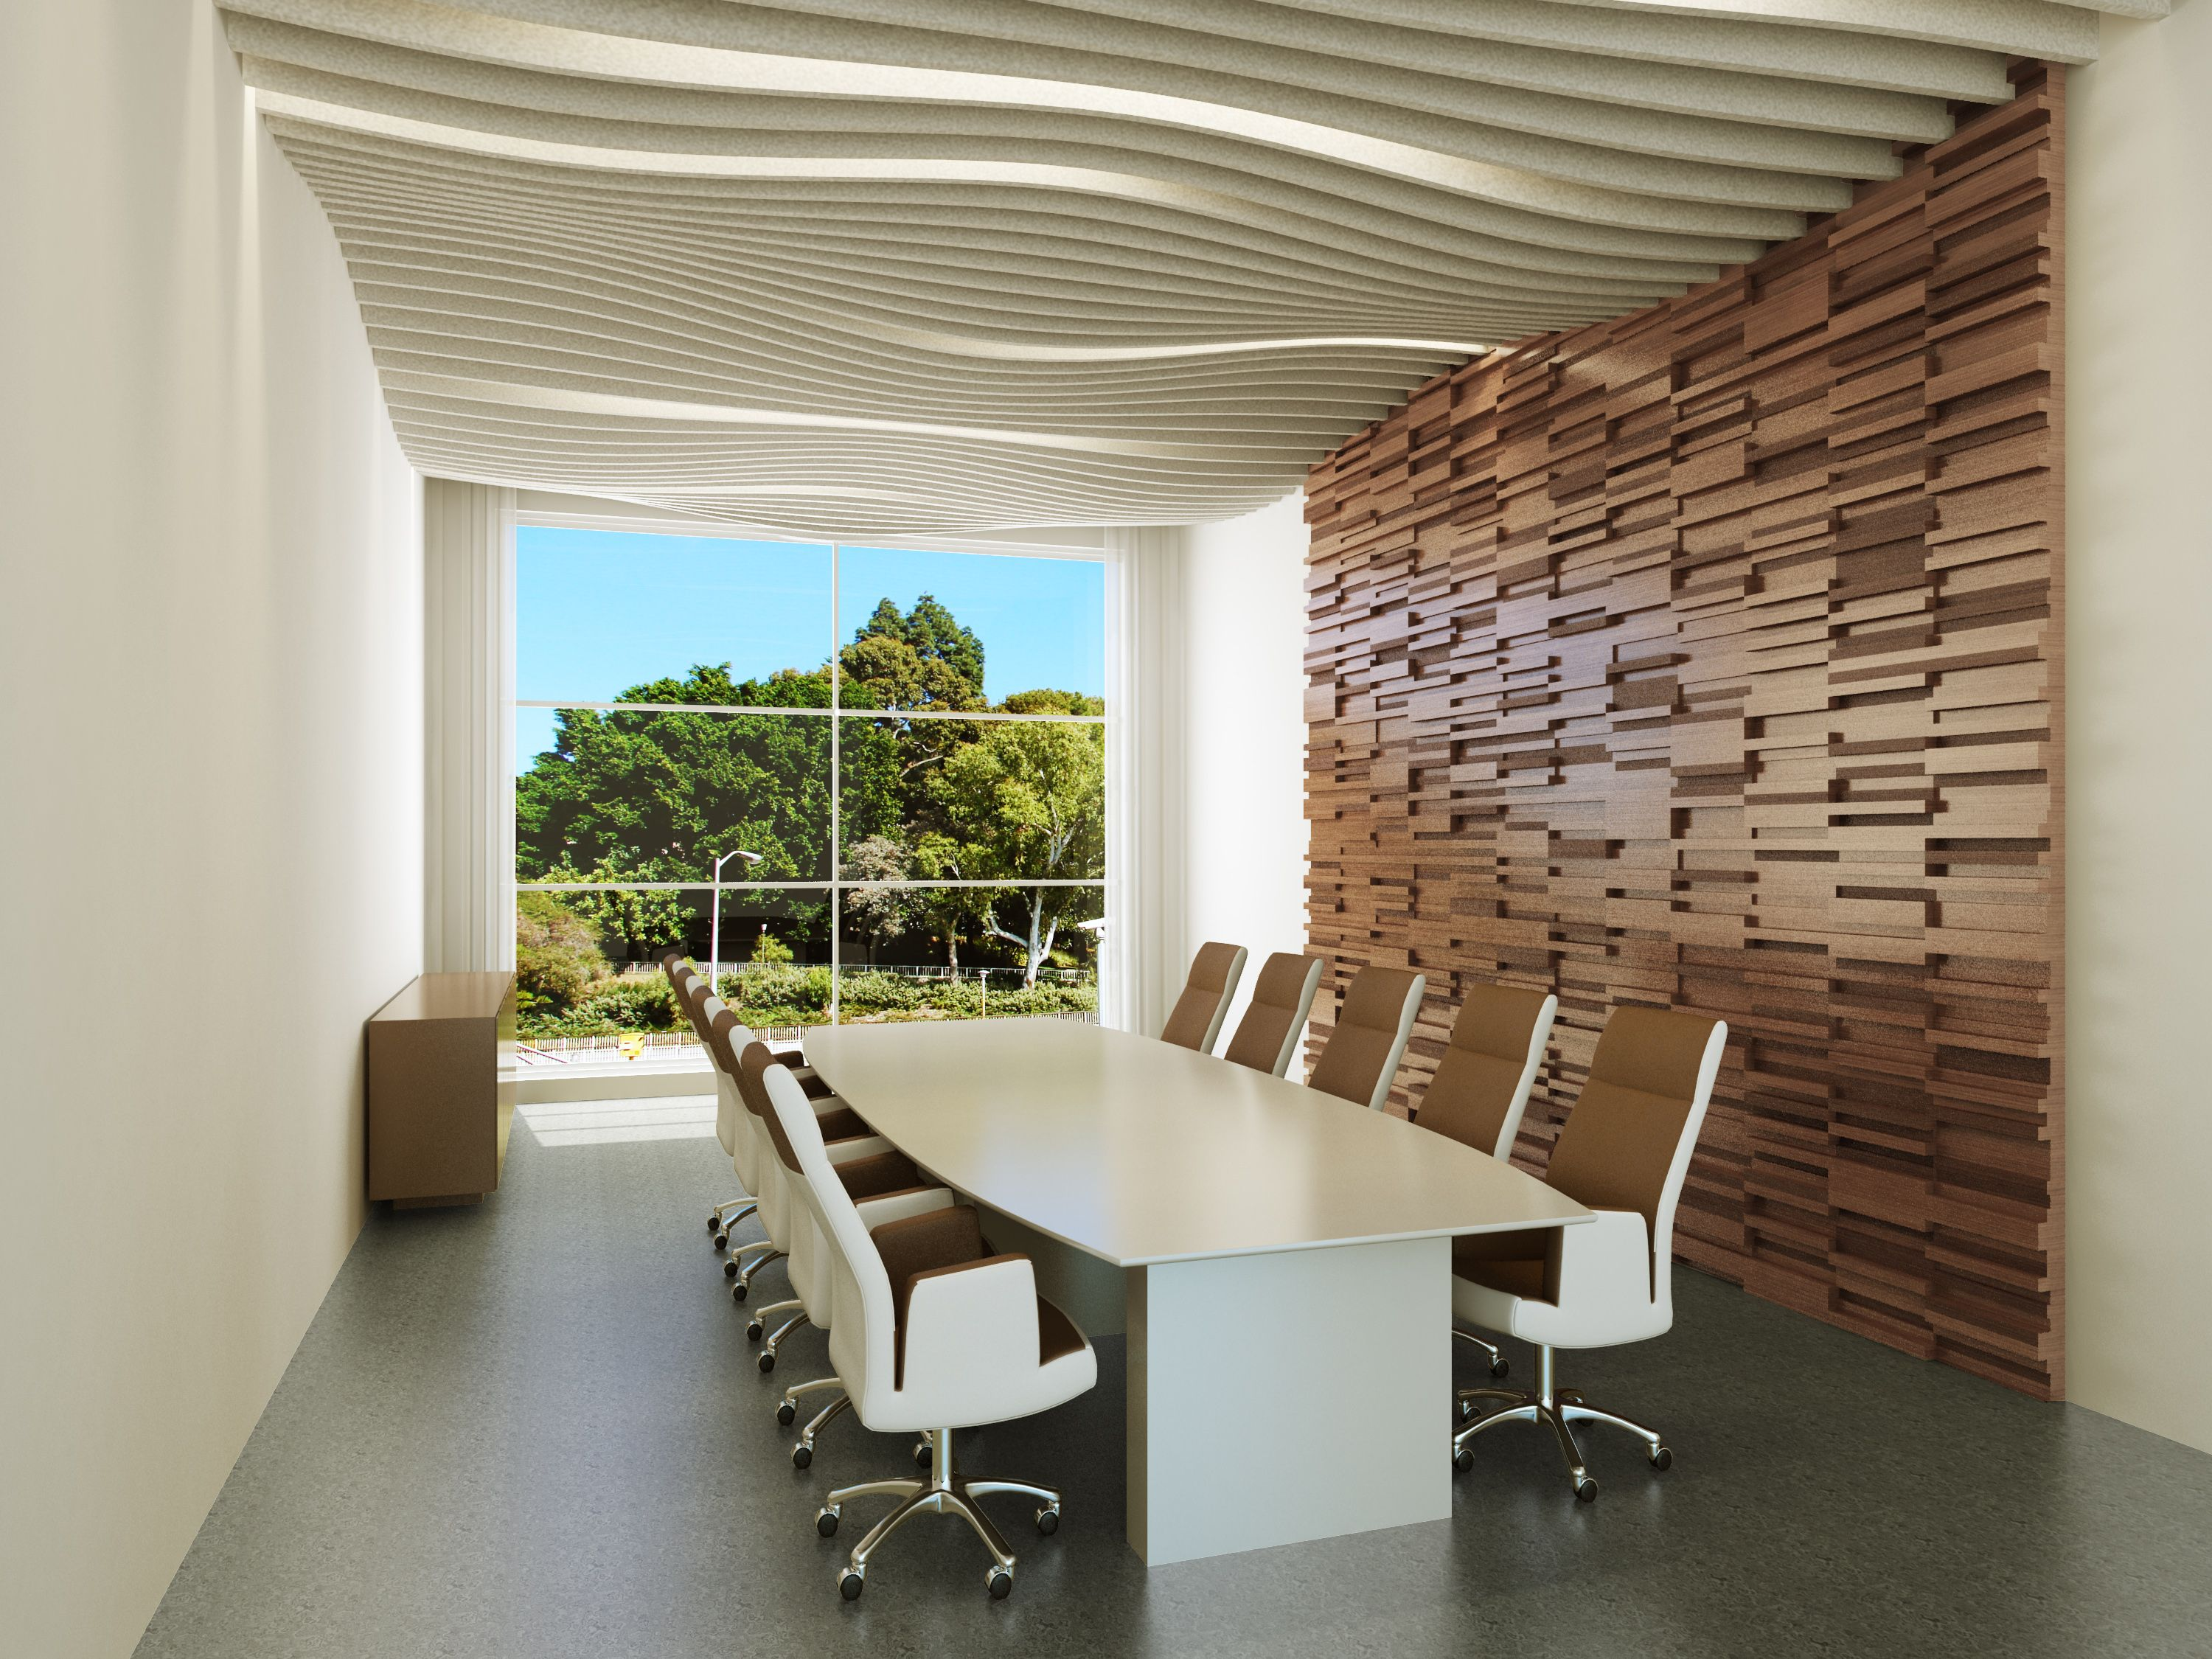 Conference Room Interior 3d Interior Modern Photorealistic